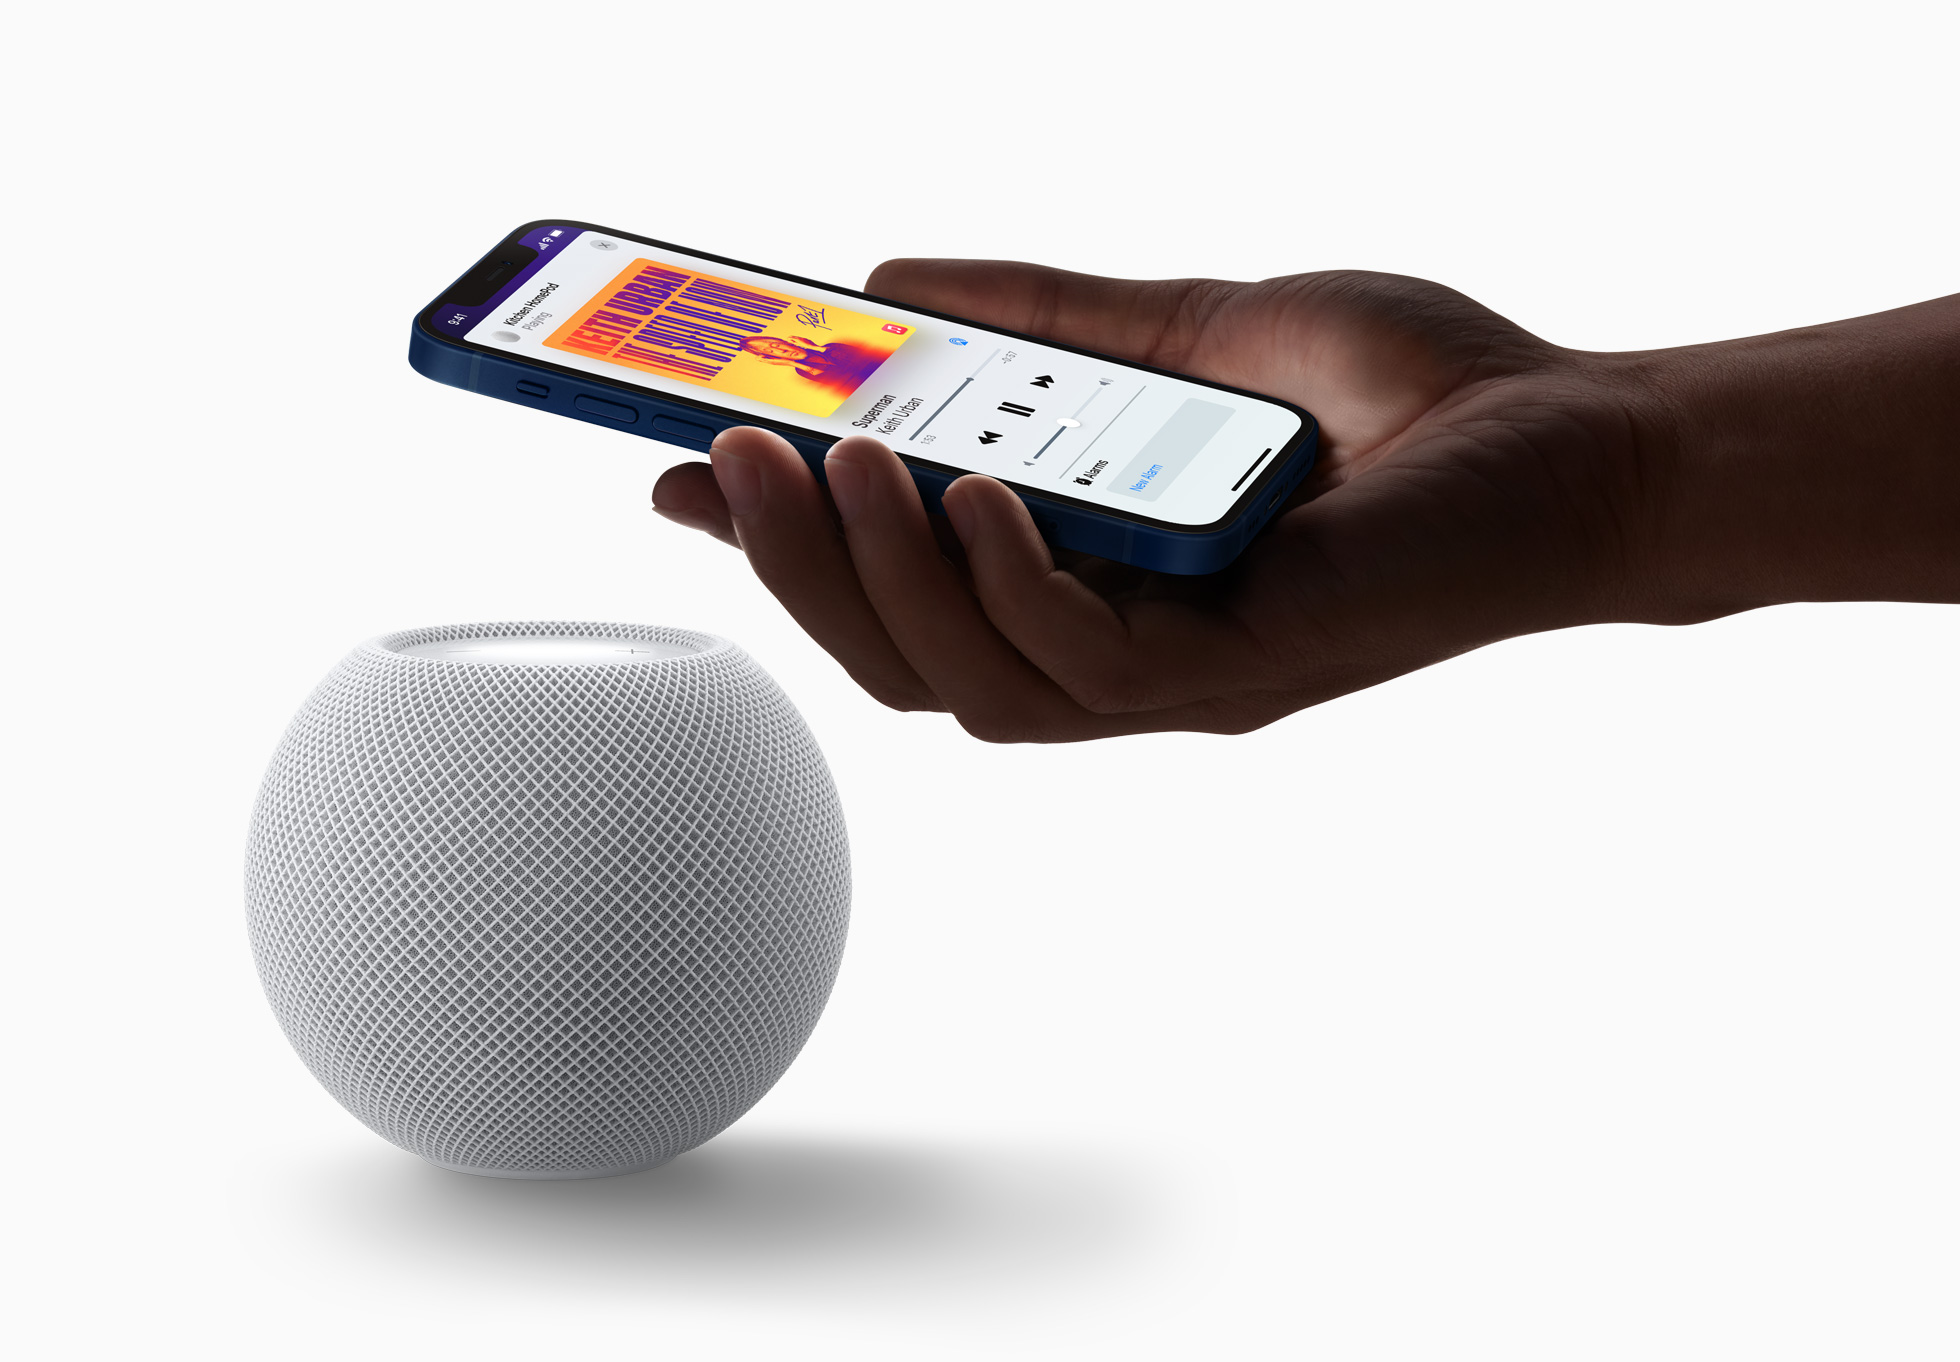 Apple TV surround sound - a HomePod mini shown playing music